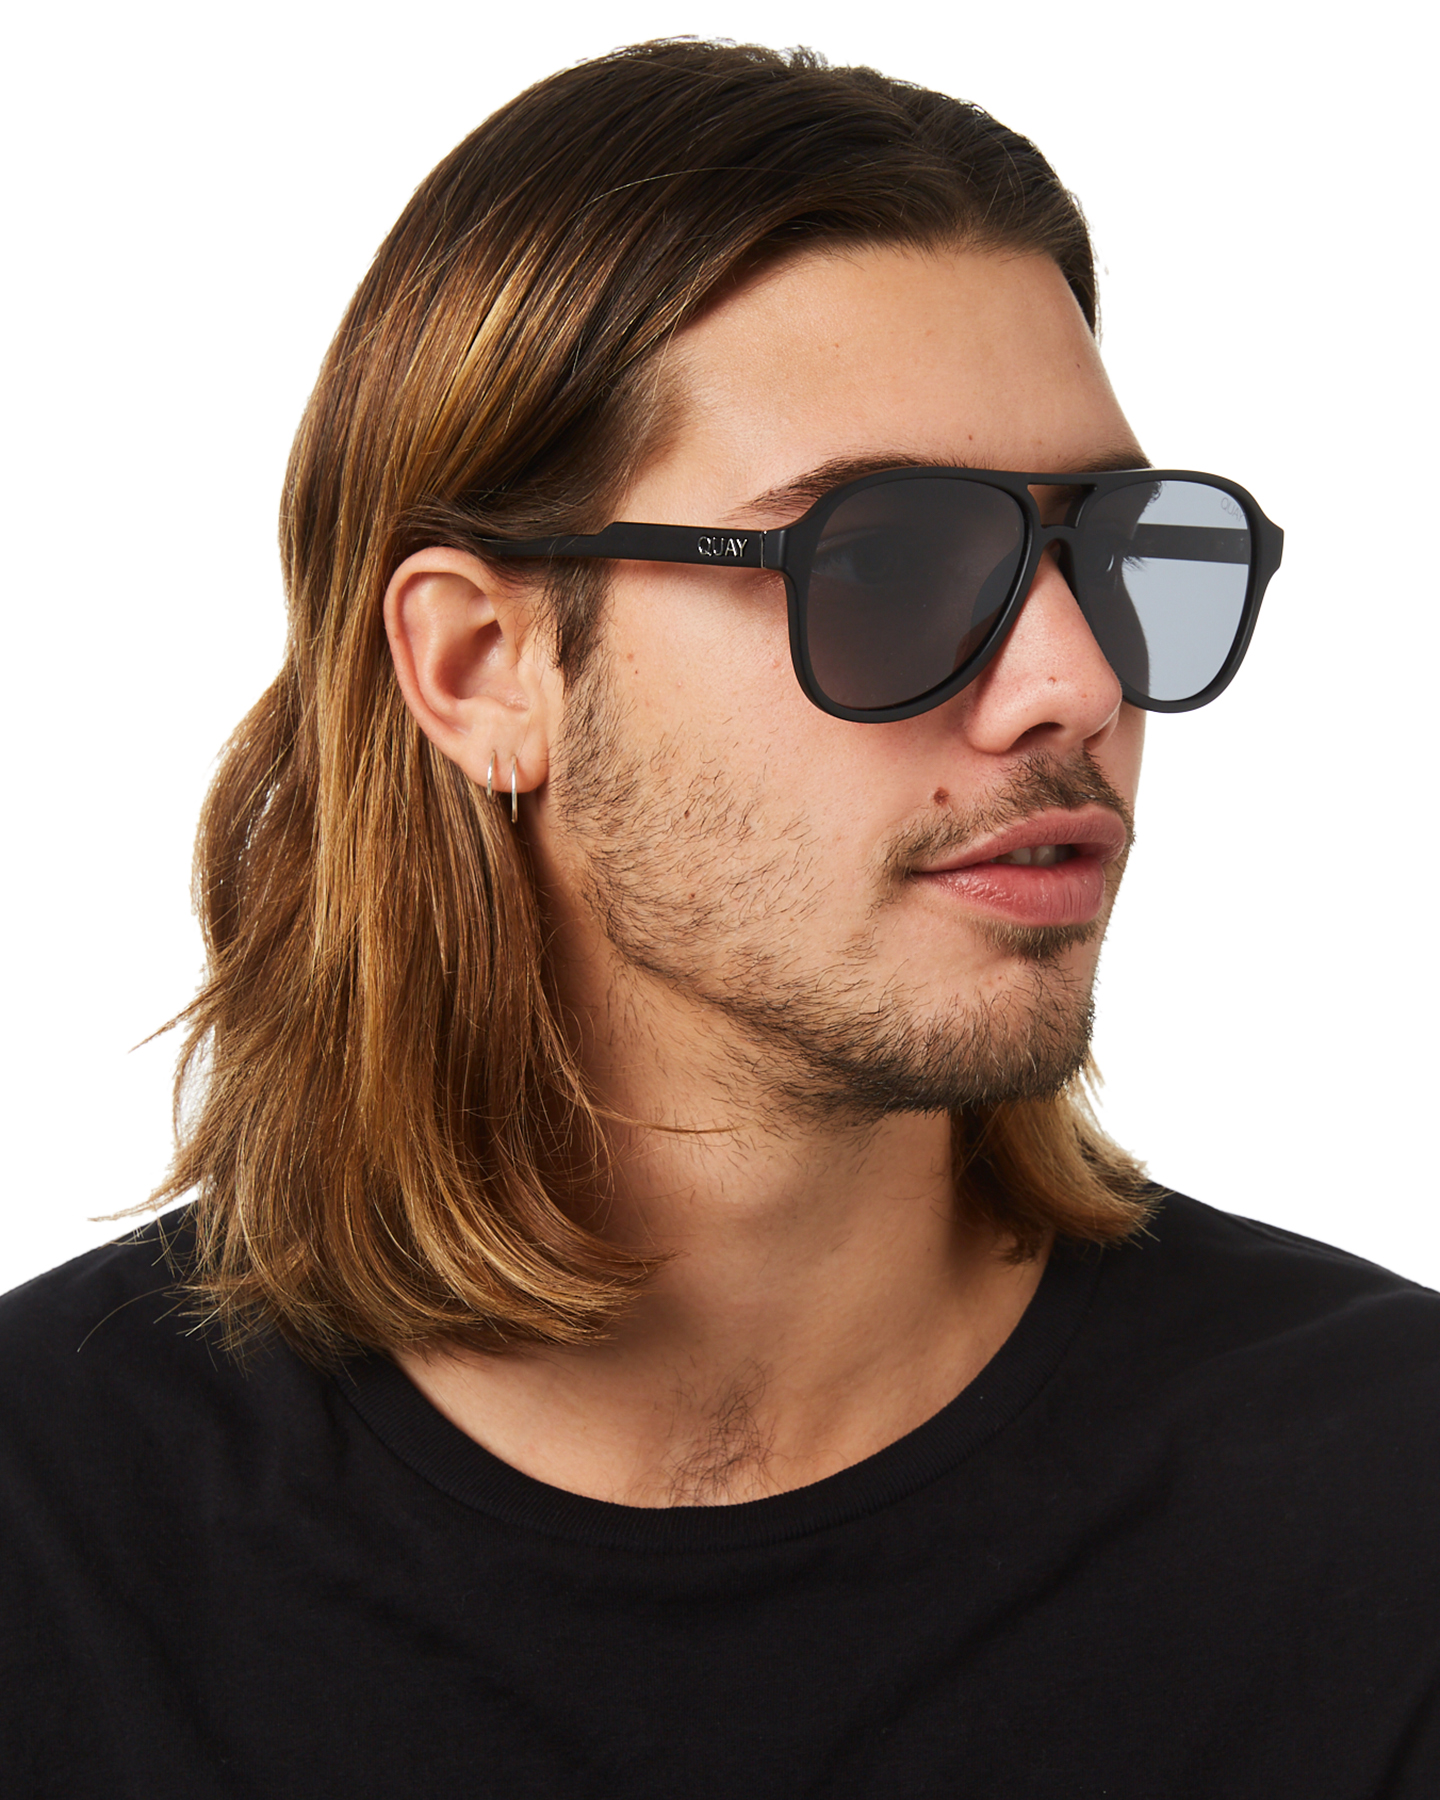 8cd254f072 Quay still standing Sunglasses Source · Quay Eyewear Men s Magnetic  Sunglasses Stainless Steel Polyester